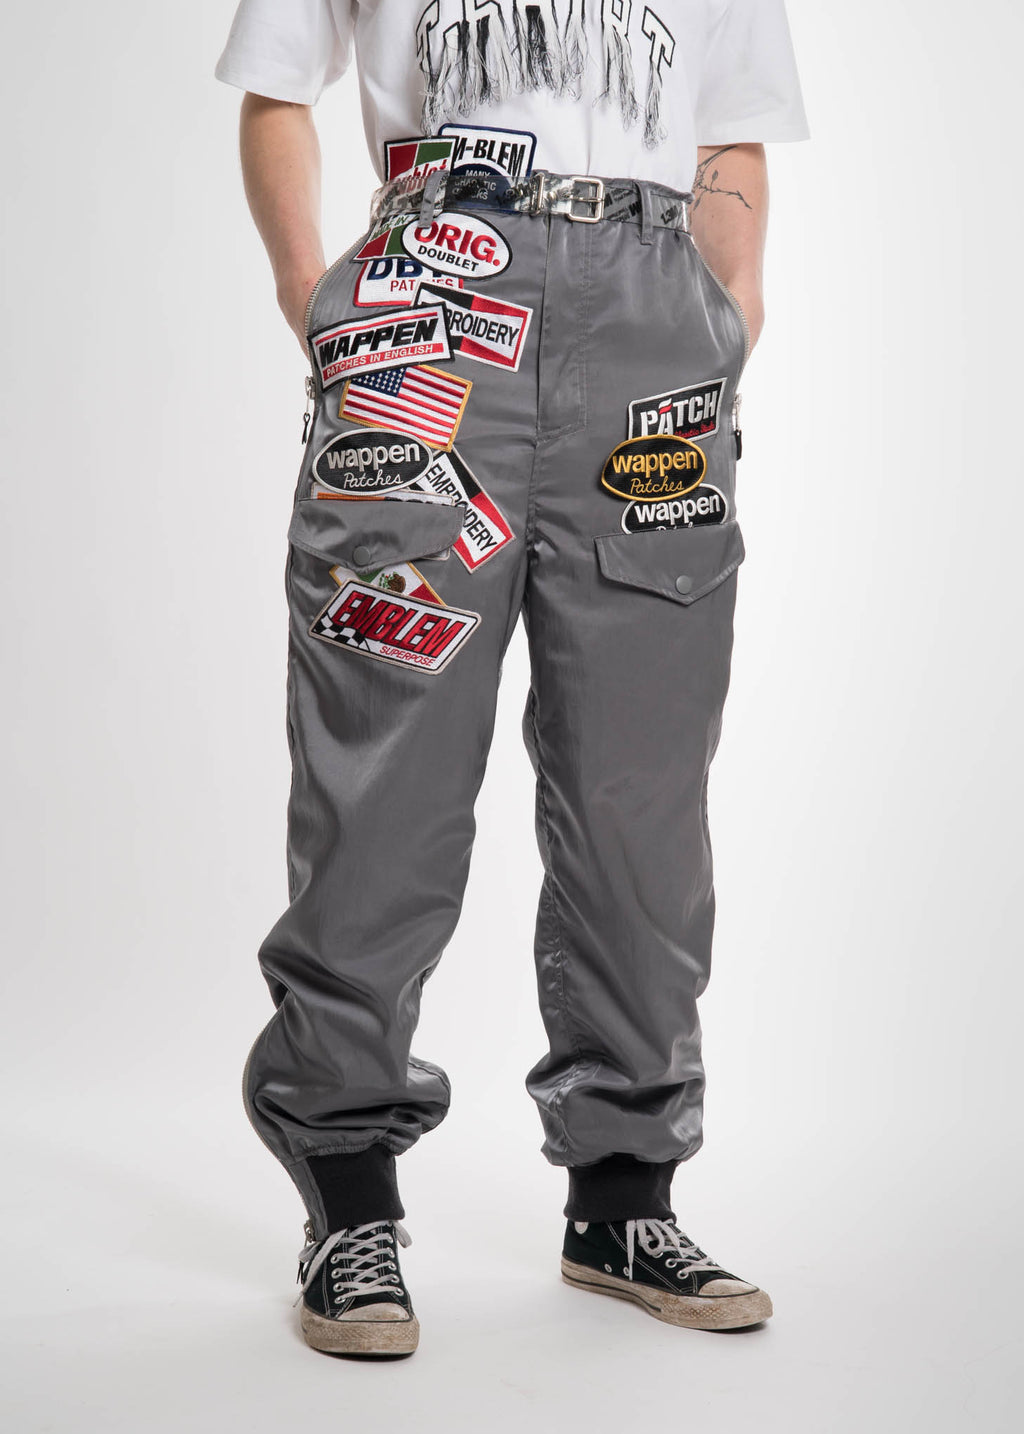 Grey Chaos Patches Nylon Pant